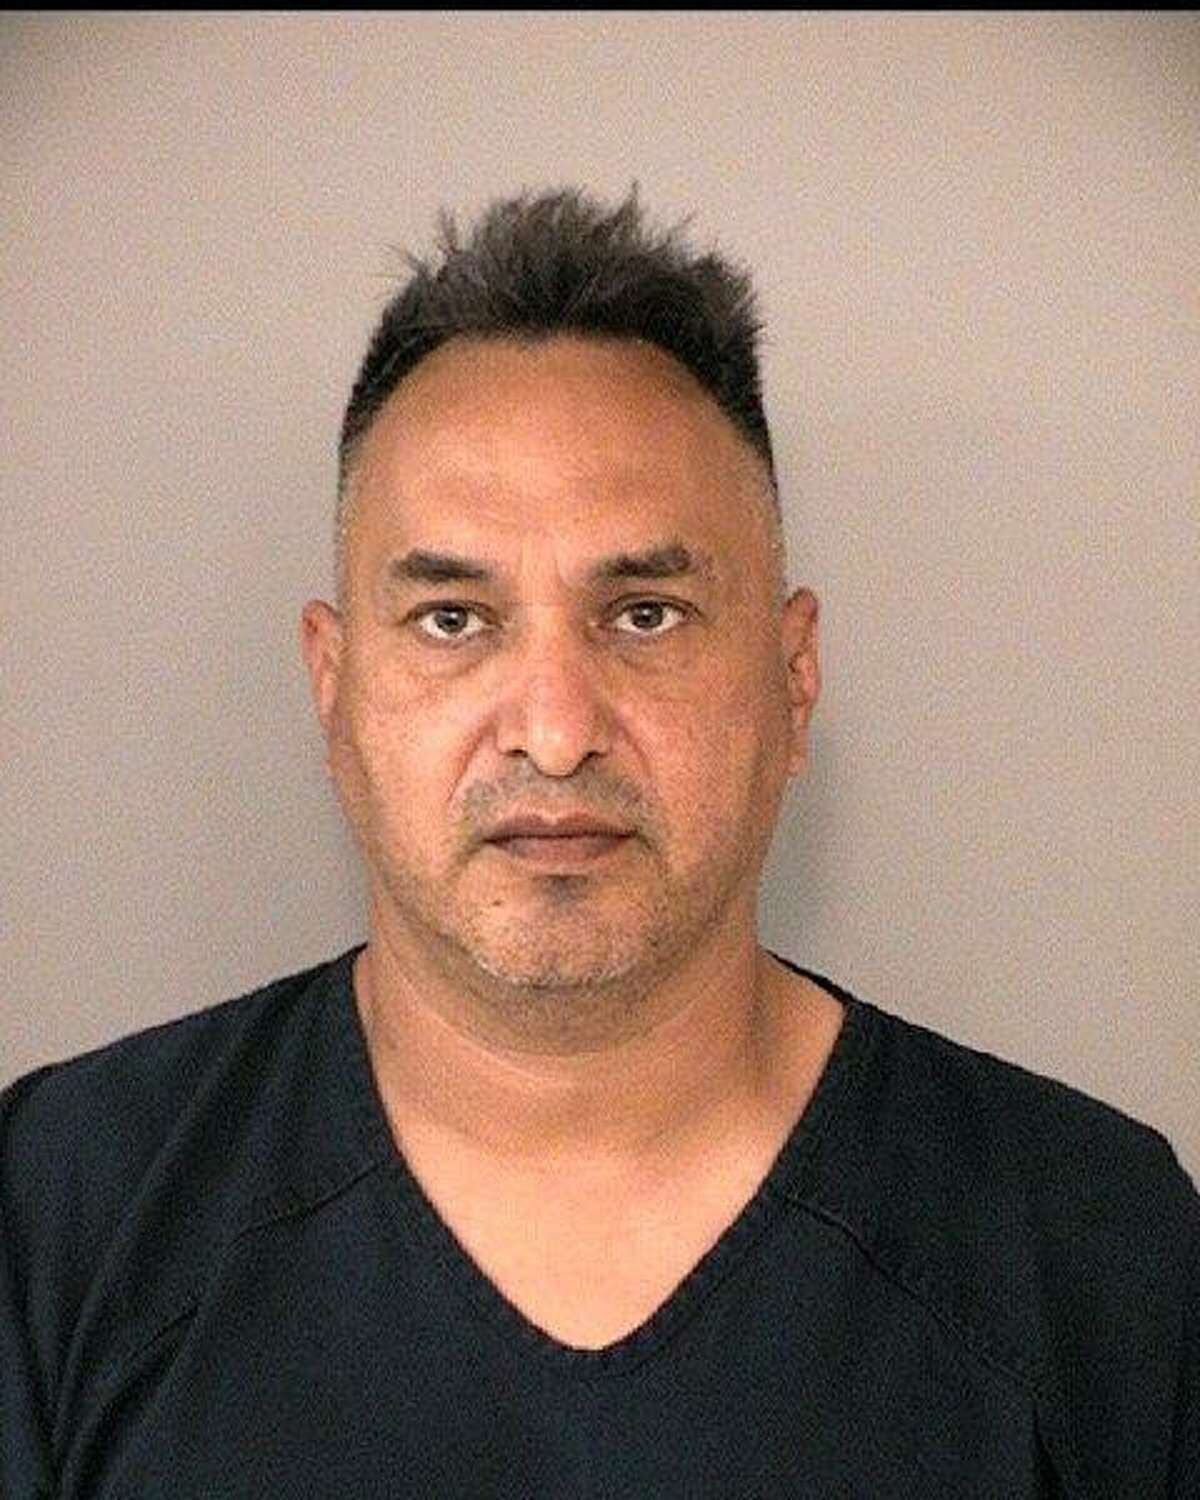 Ivan Lopez-Lopez, age 45, was arrested by the Fort Bend County Sheriff's Office after allegedly sexually assaulting a young child for more than three years.